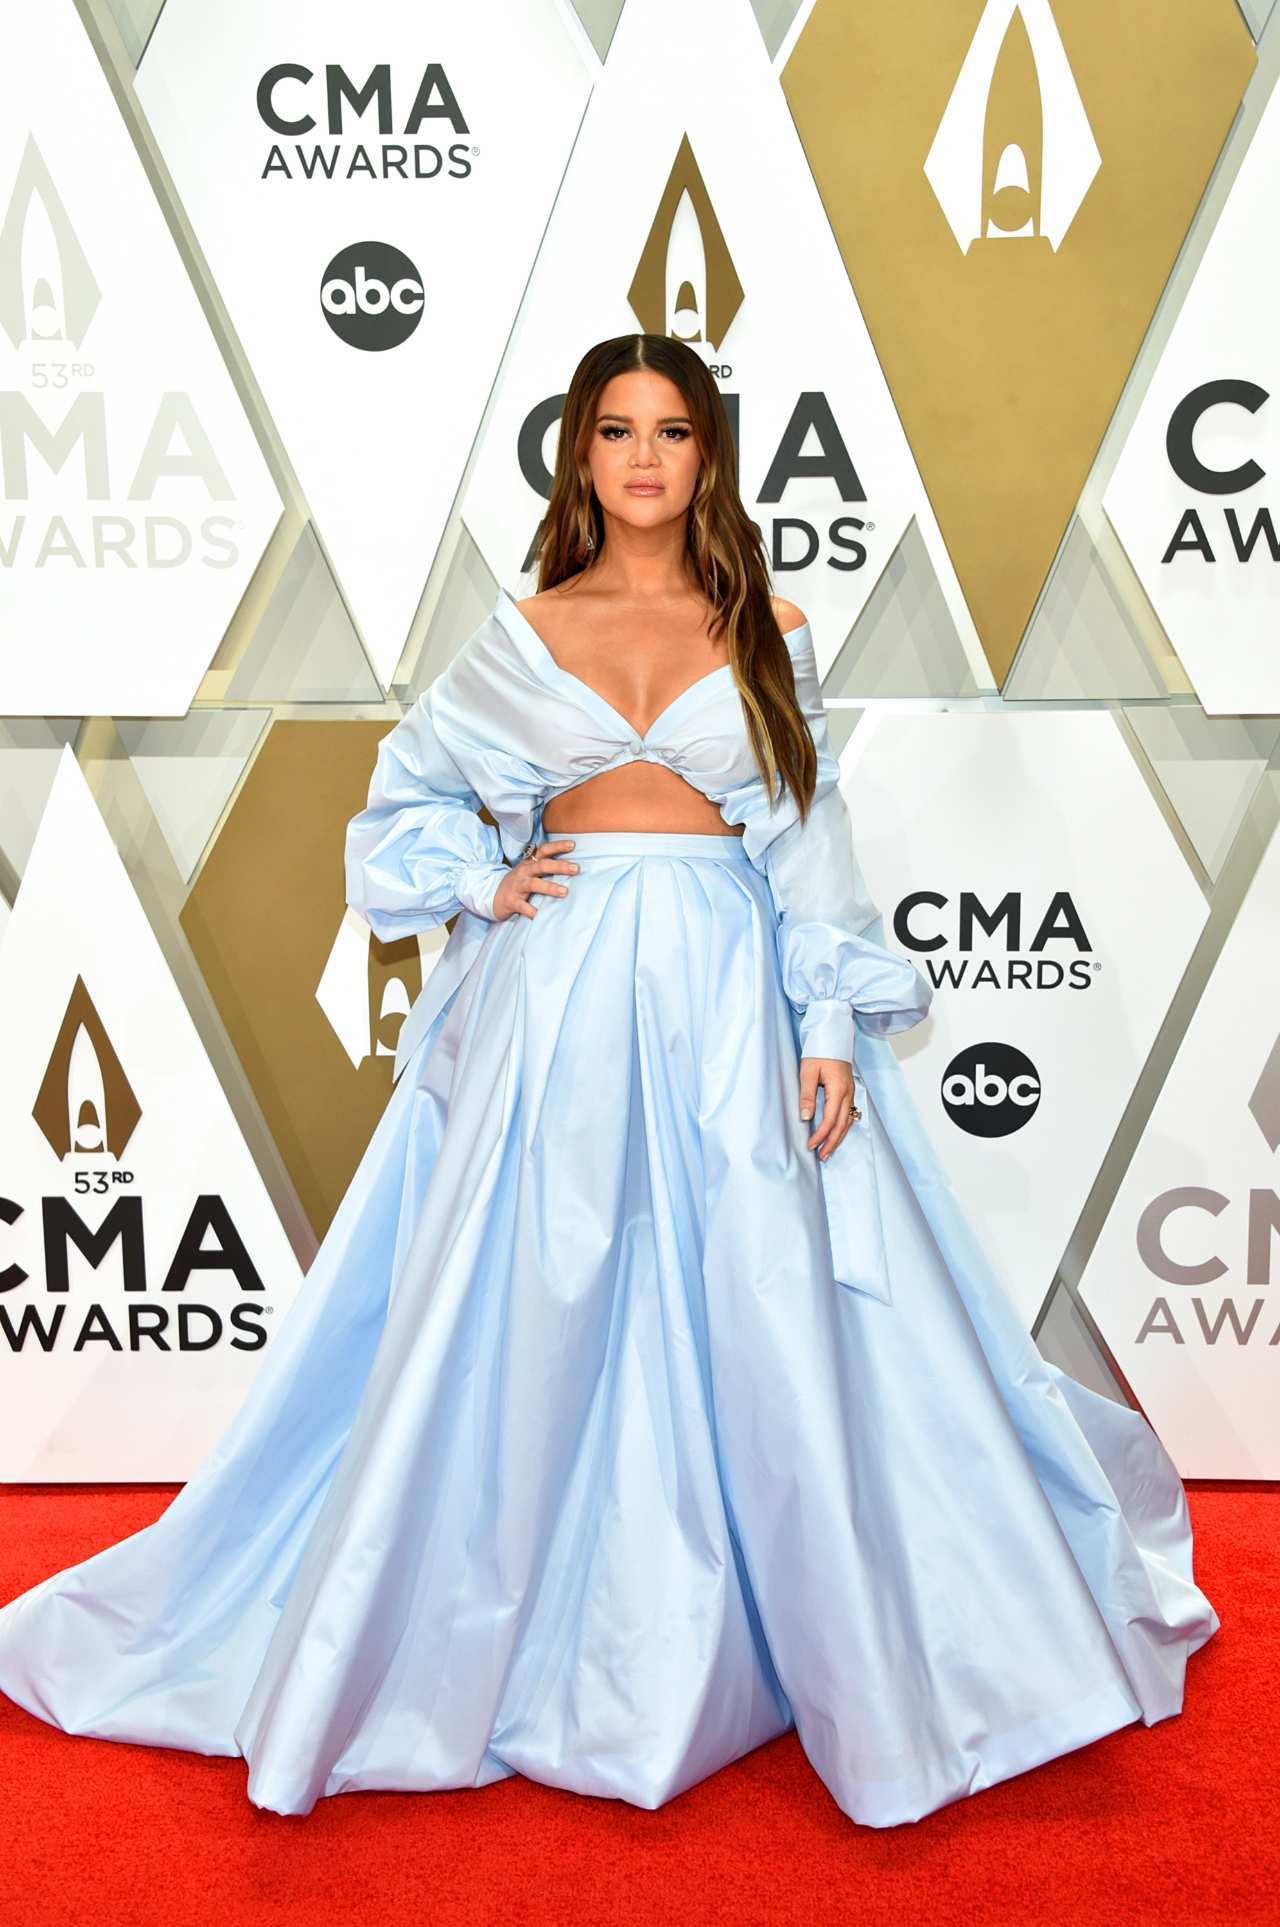 maren-morris-cma-awards-2019-Getty-Images